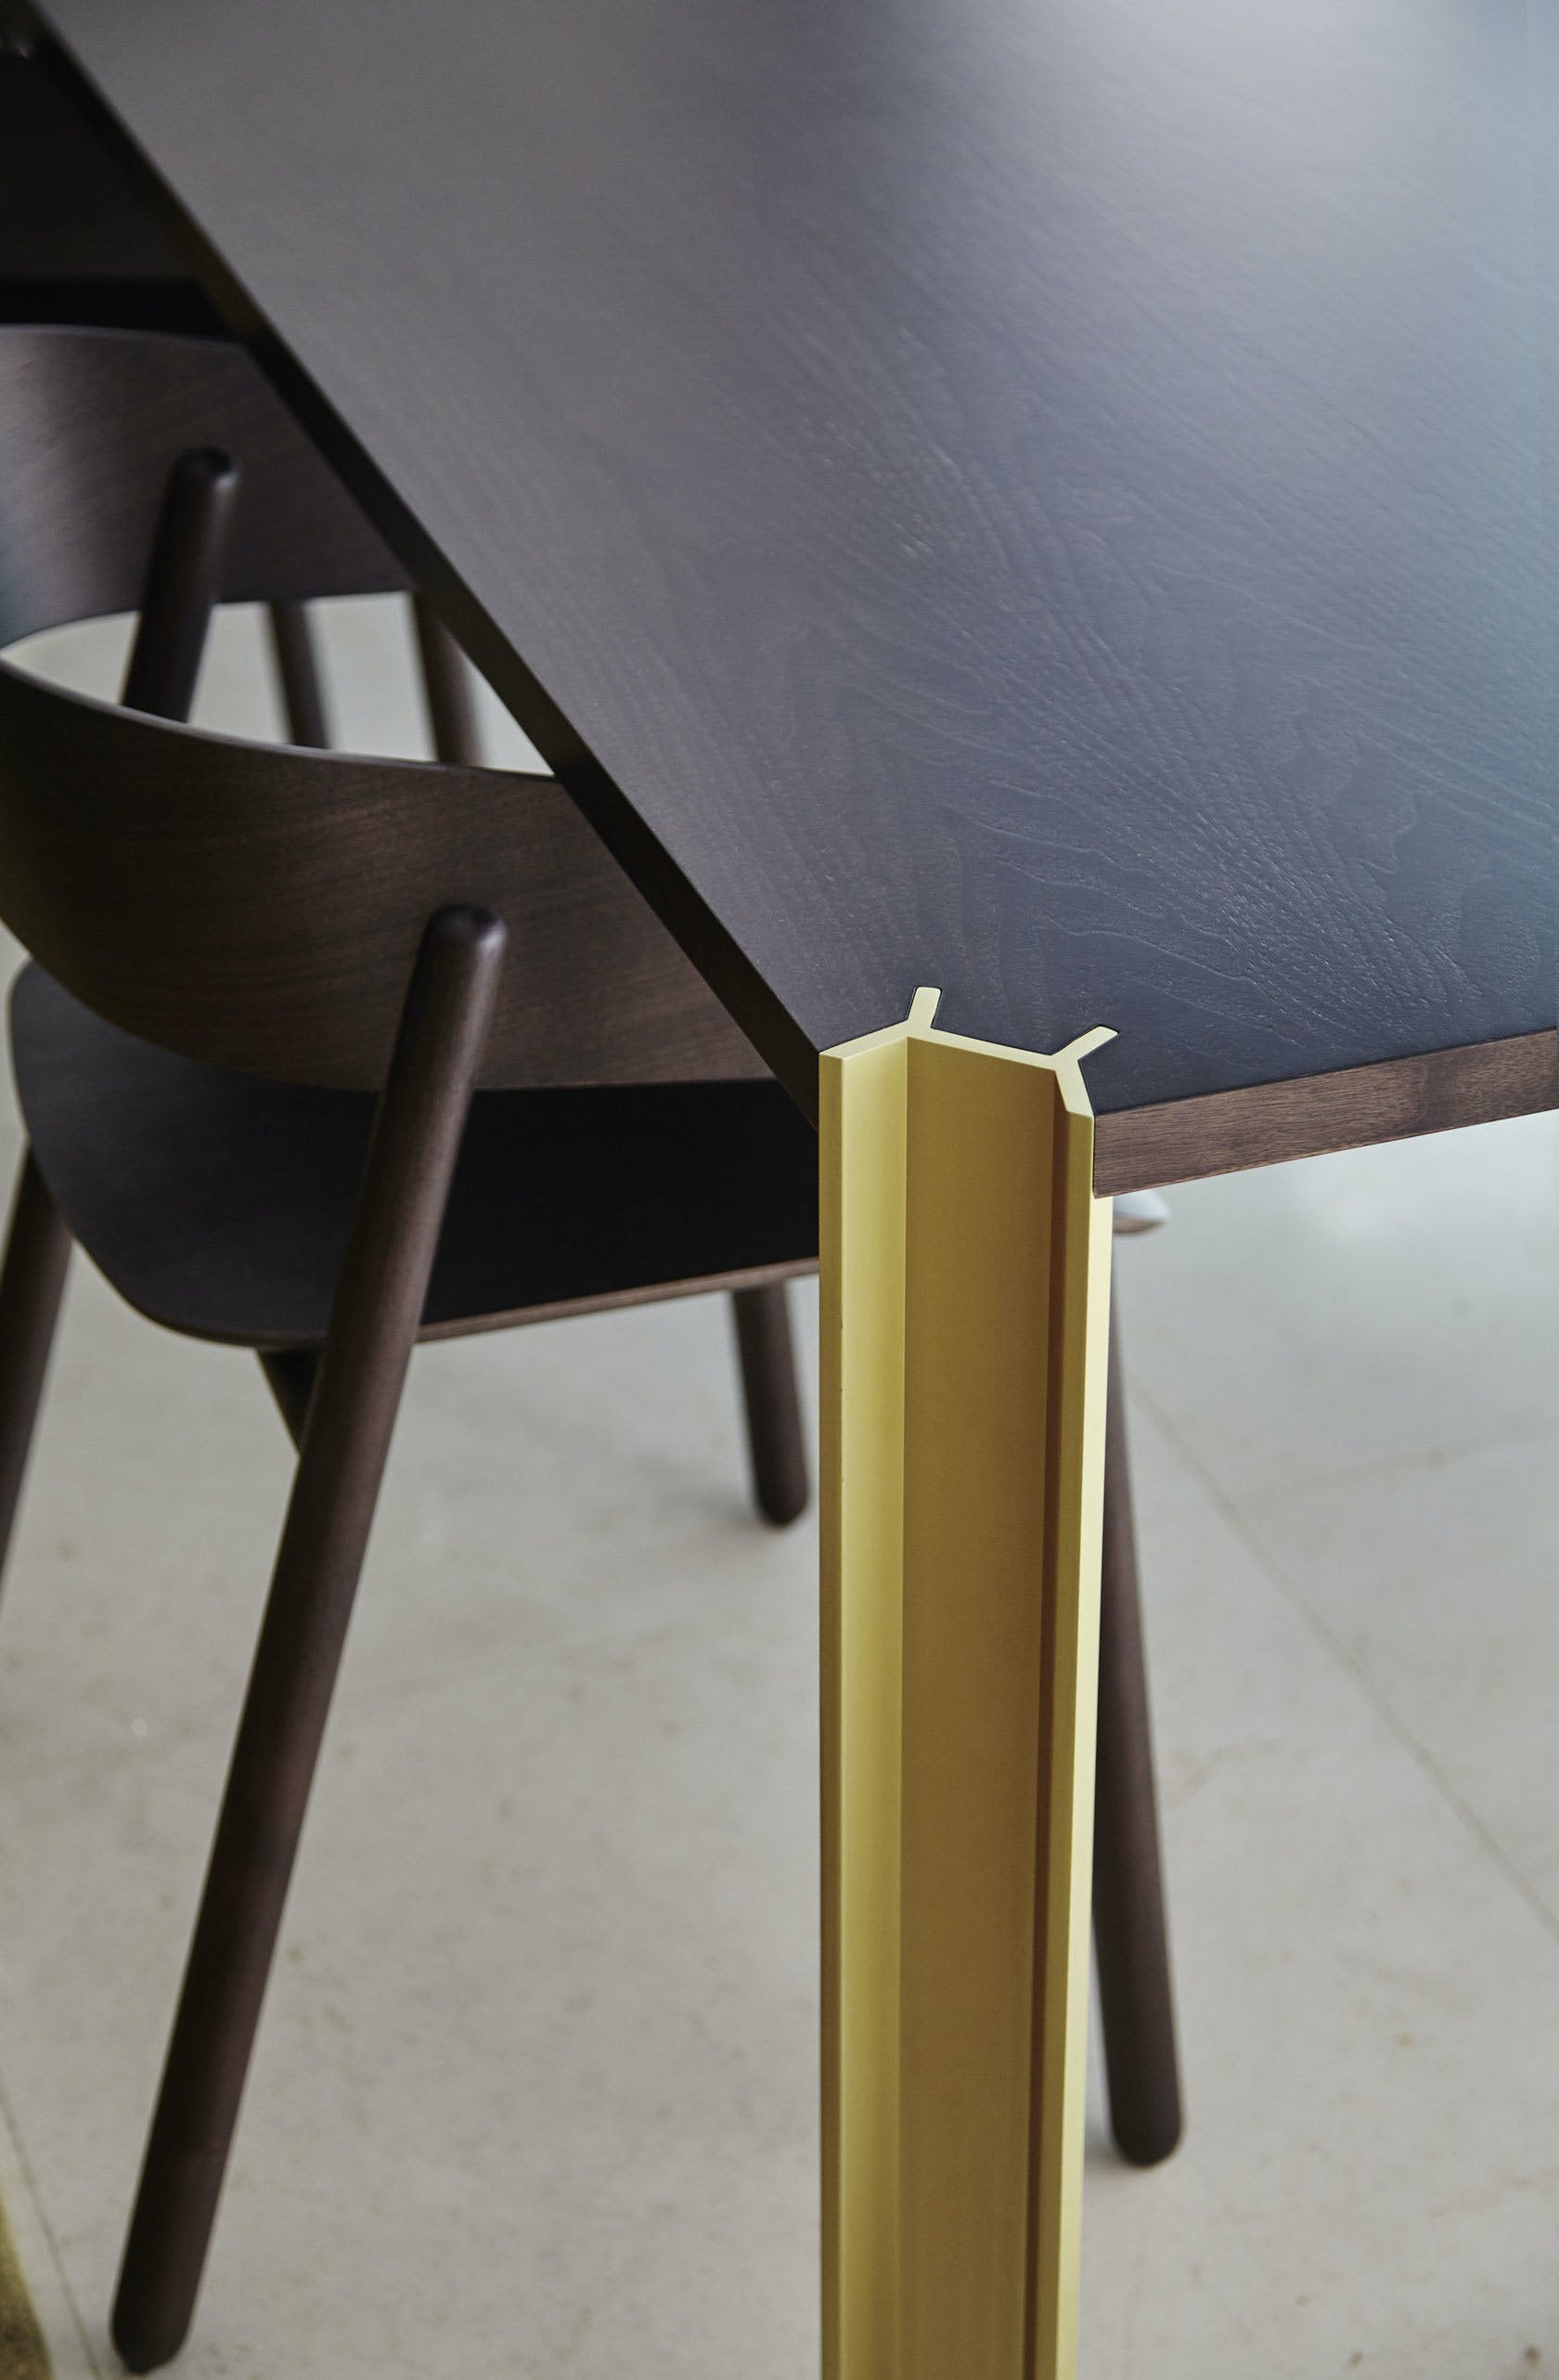 Punt Furniture Crossing Insitu Black Leg Detail Gold Haute Living